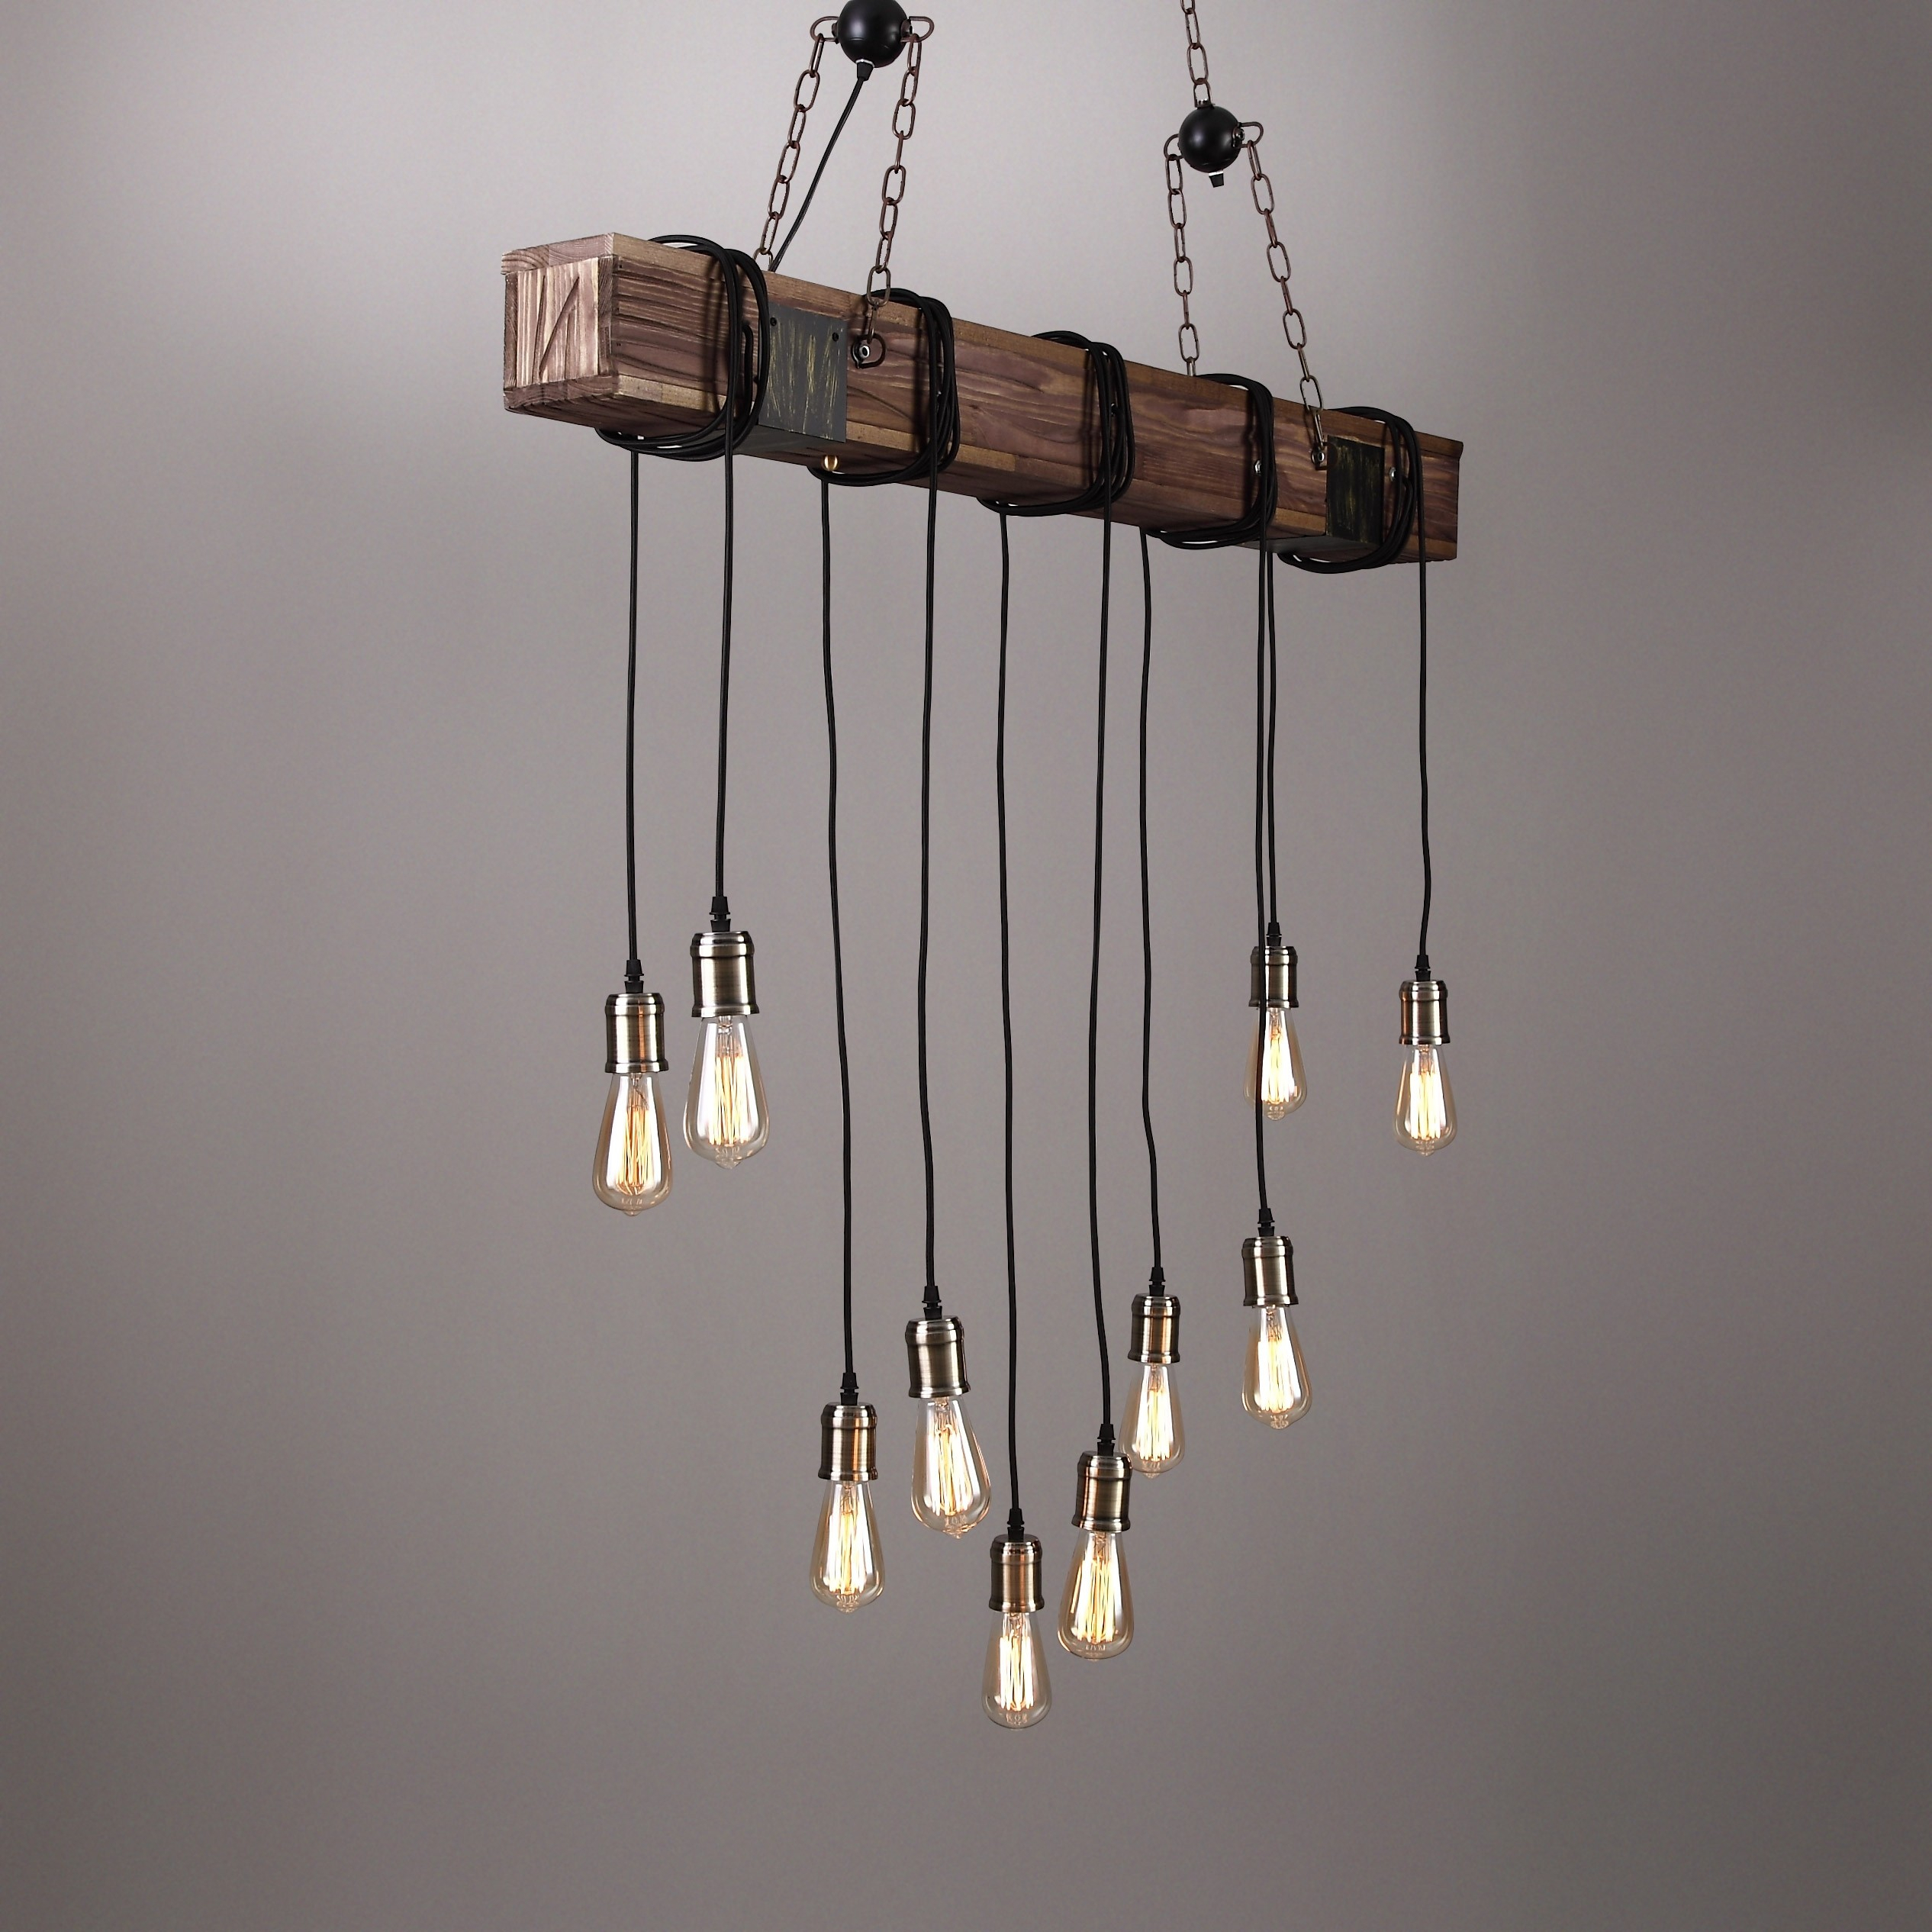 Farmhouse Style Dark Distressed Wood Beam Large Linear Island Pendant Light 10 Edison Bulbs In Vintage Edison 1 Light Bowl Pendants (View 17 of 30)